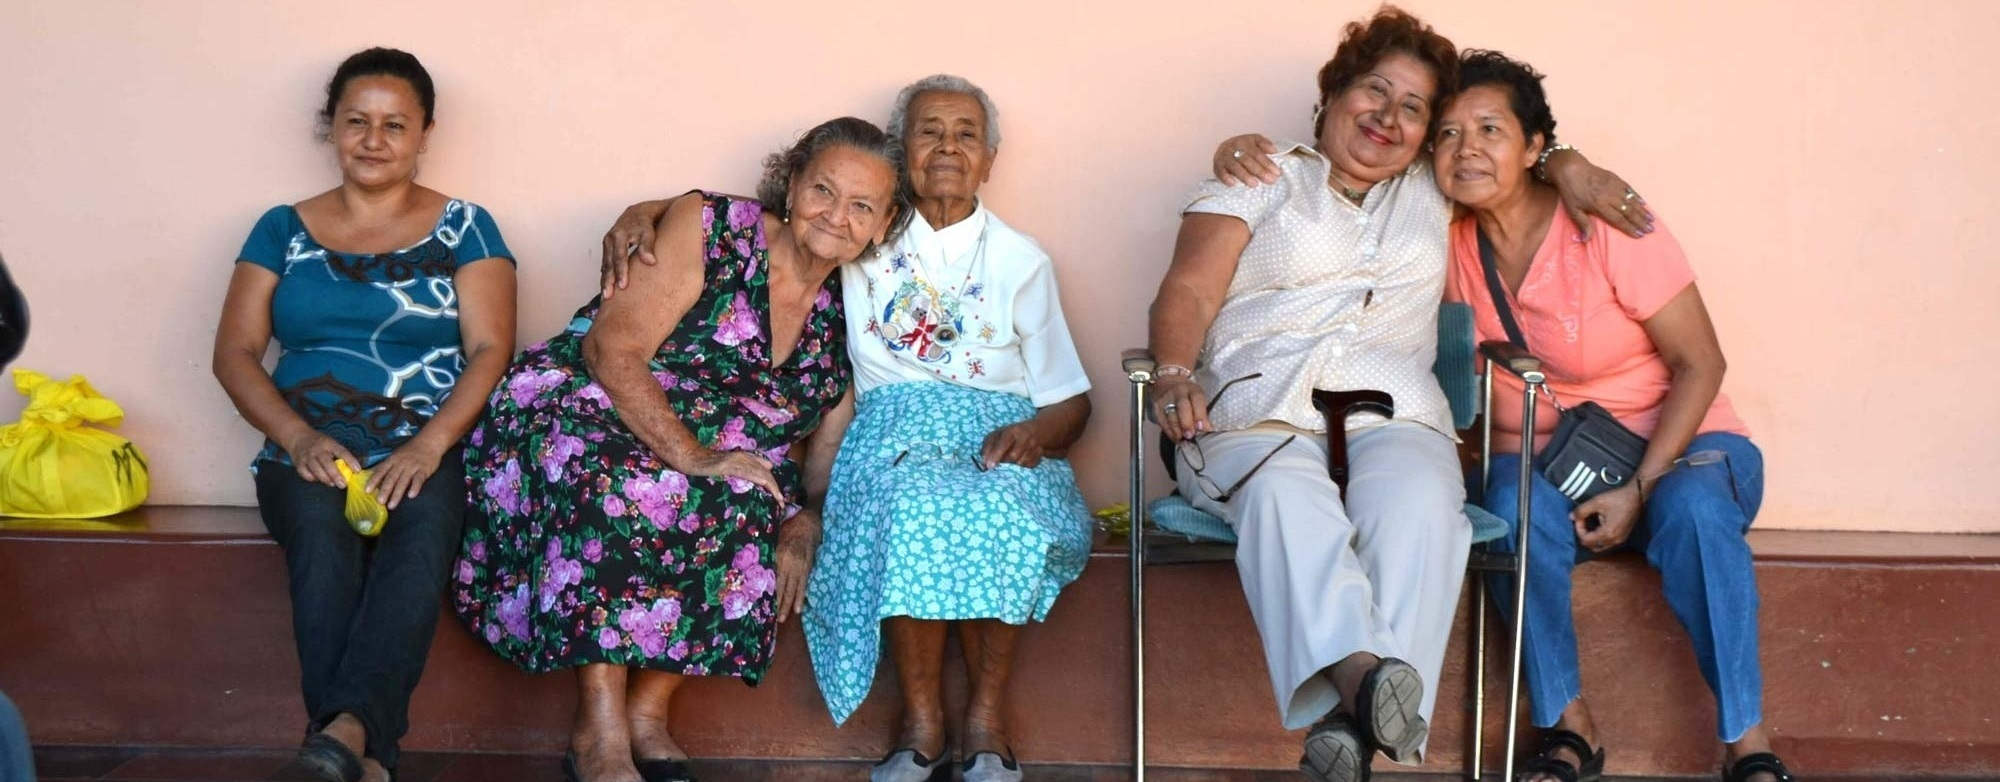 Support to orphanages, elderly homes, and special needs children